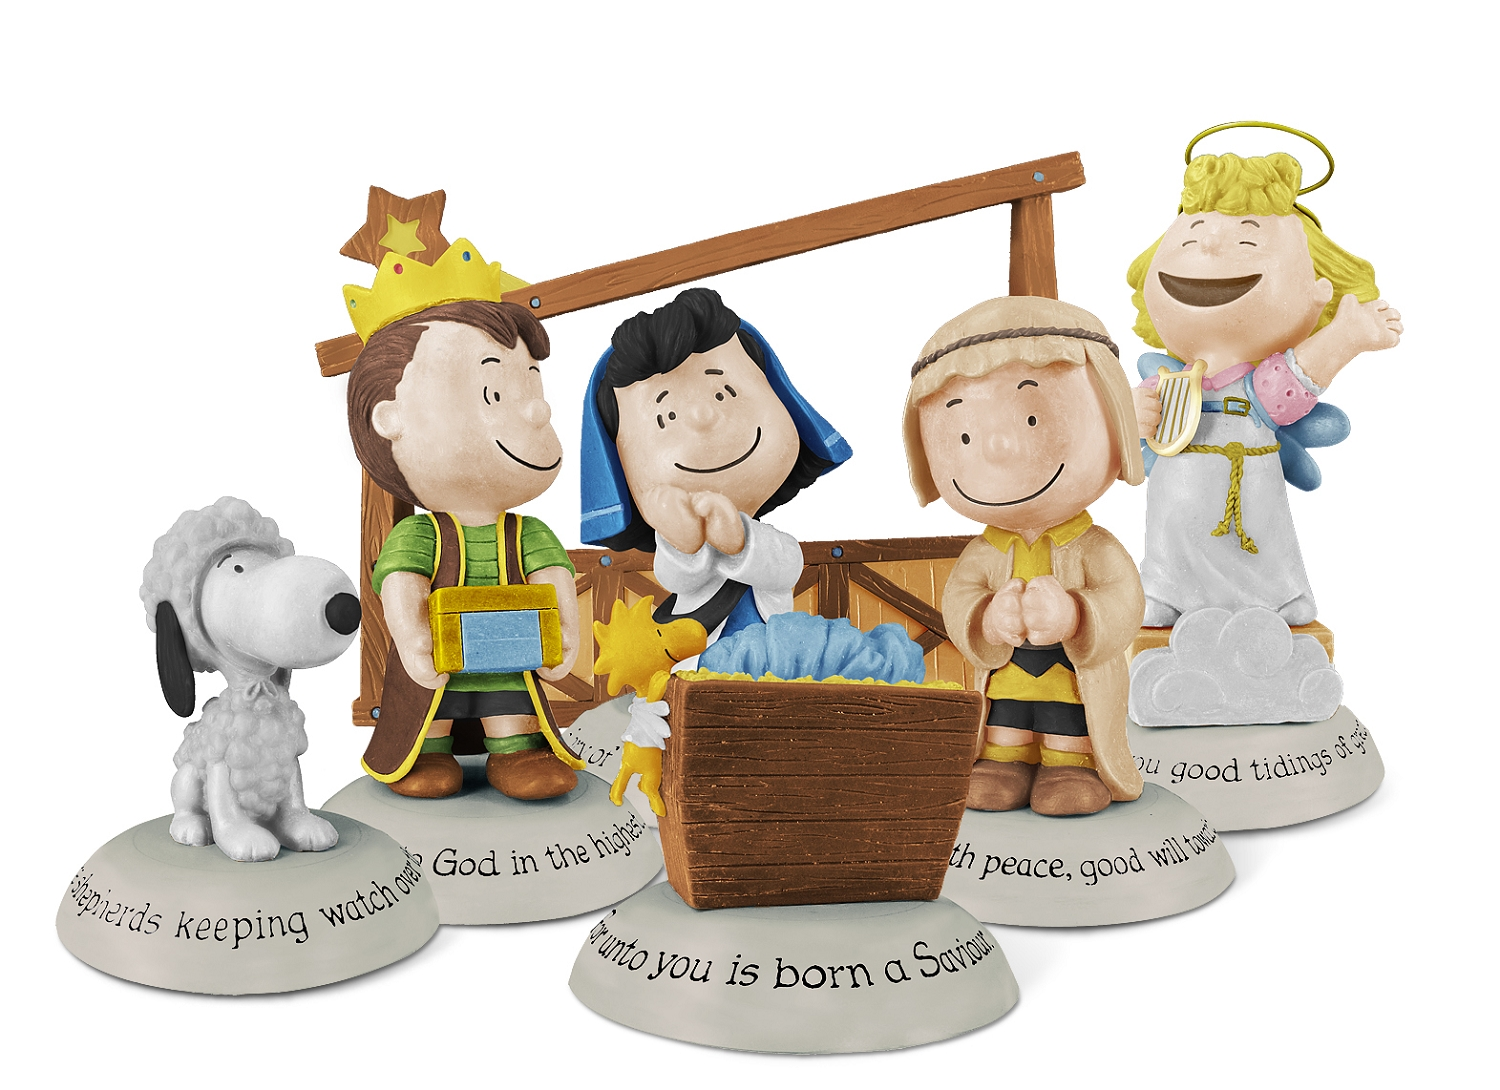 2014-18 Peanuts Nativity Collection - 7 figurines